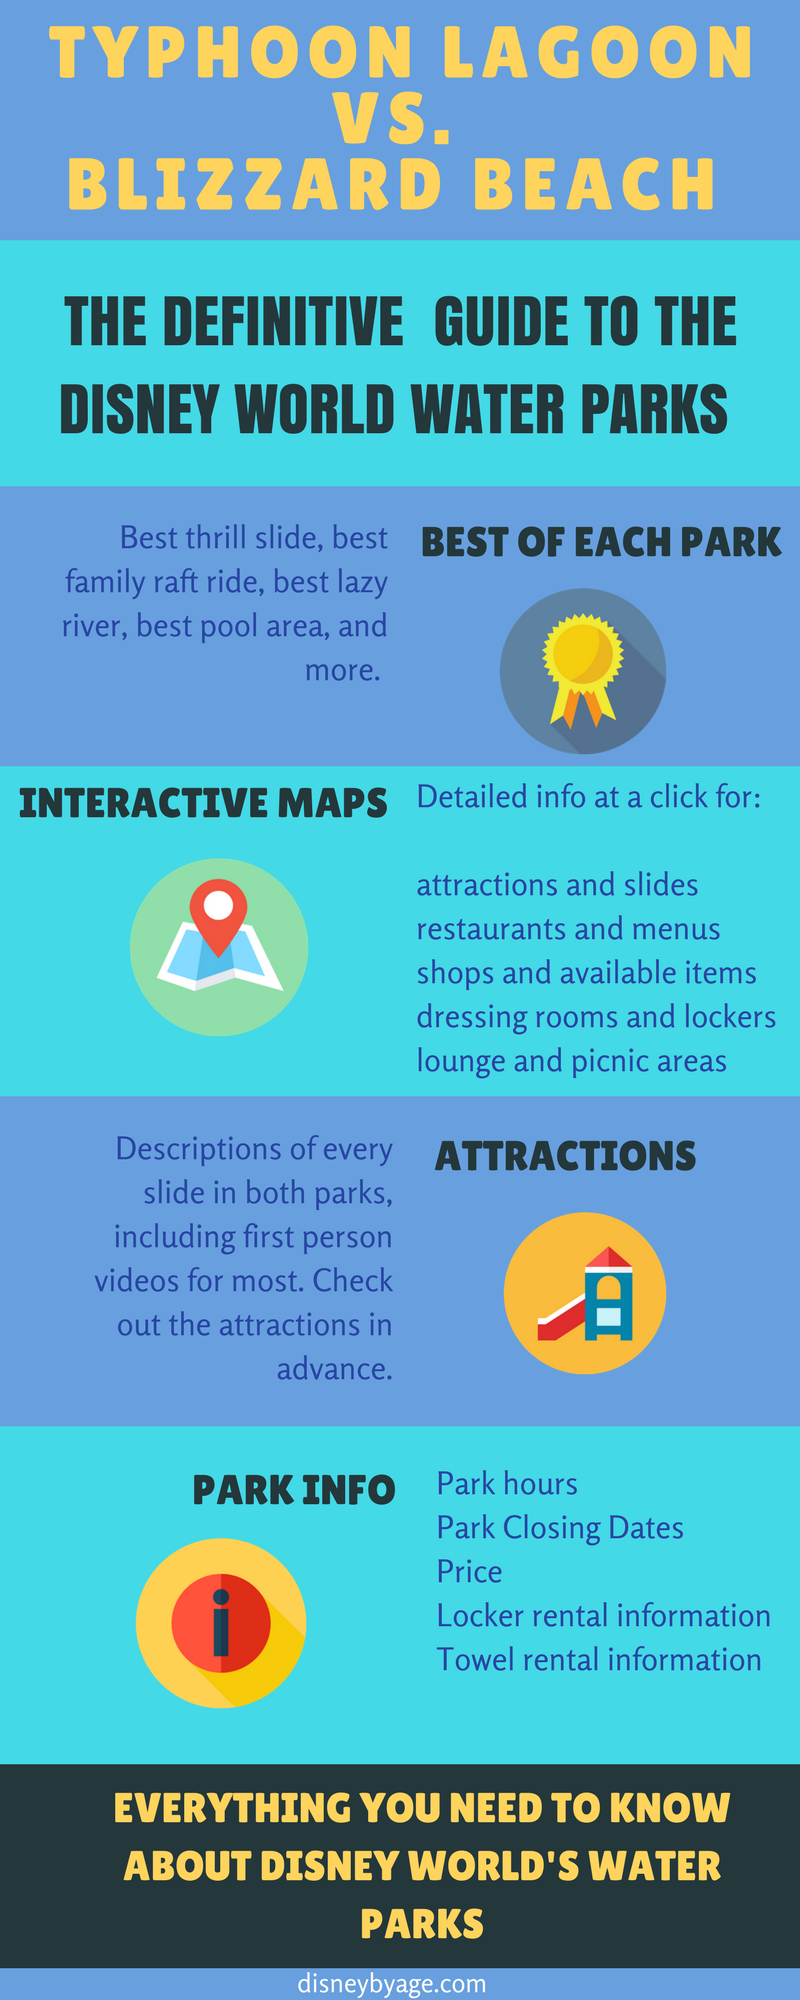 Typhoon Lagoon versus Blizzard Beach The Definitive Guide to the ...